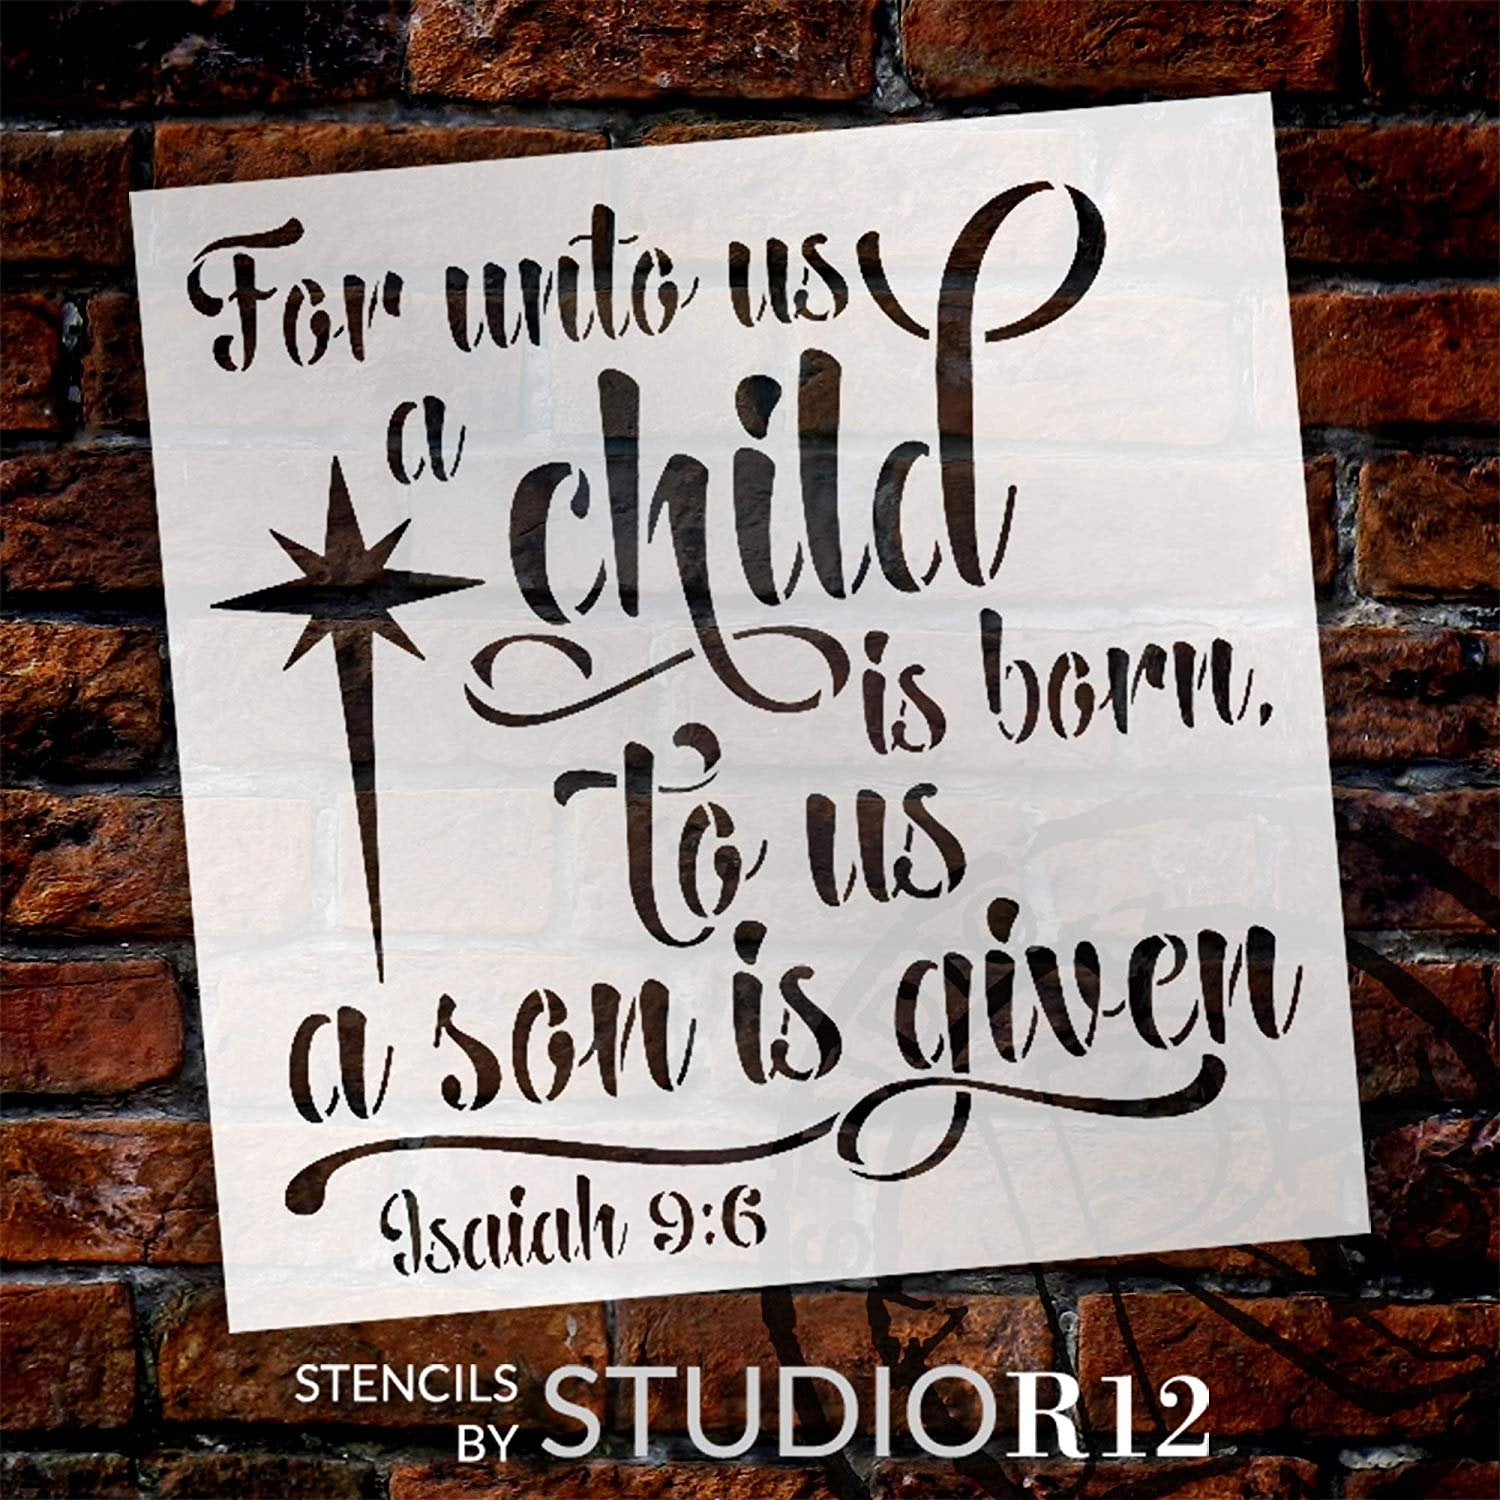 for Unto Us A Child is Born Stencil with Star StudioR12 | Christian Faith Bible Verse Isaiah 9:6 | DIY Christmas Holiday Home Decor | Paint Wood Signs | Reusable Mylar | Select Size